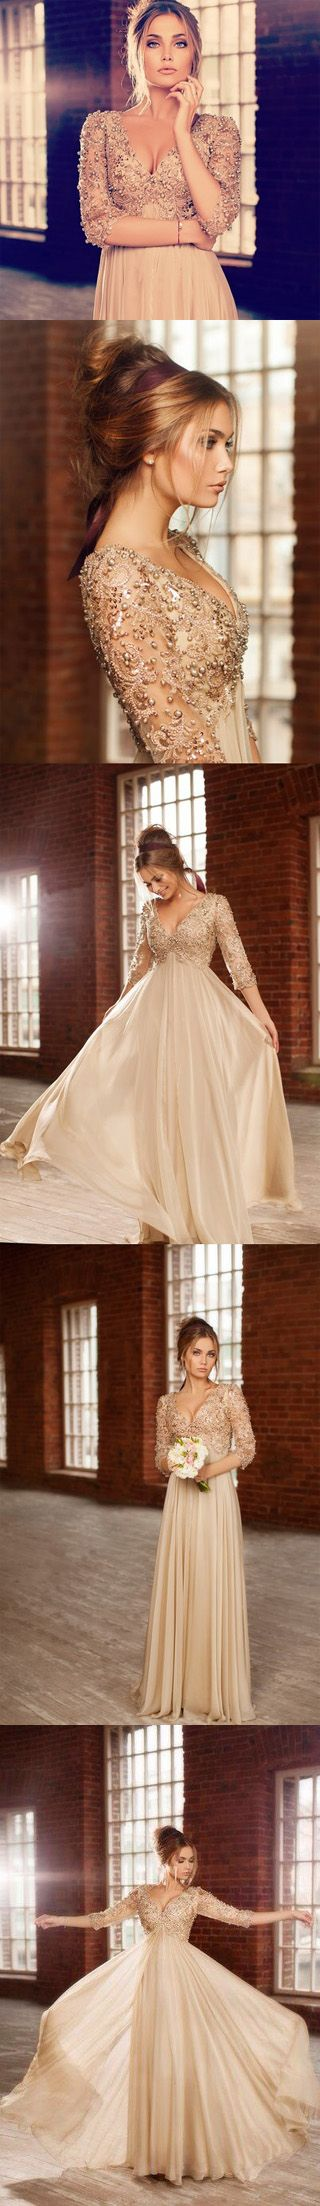 $144--Beautiful Long Prom Dresses 2014 New Arrival Deep V-neck 3/4 Sleeves Beaded A-line Chiffon Evening Dresses